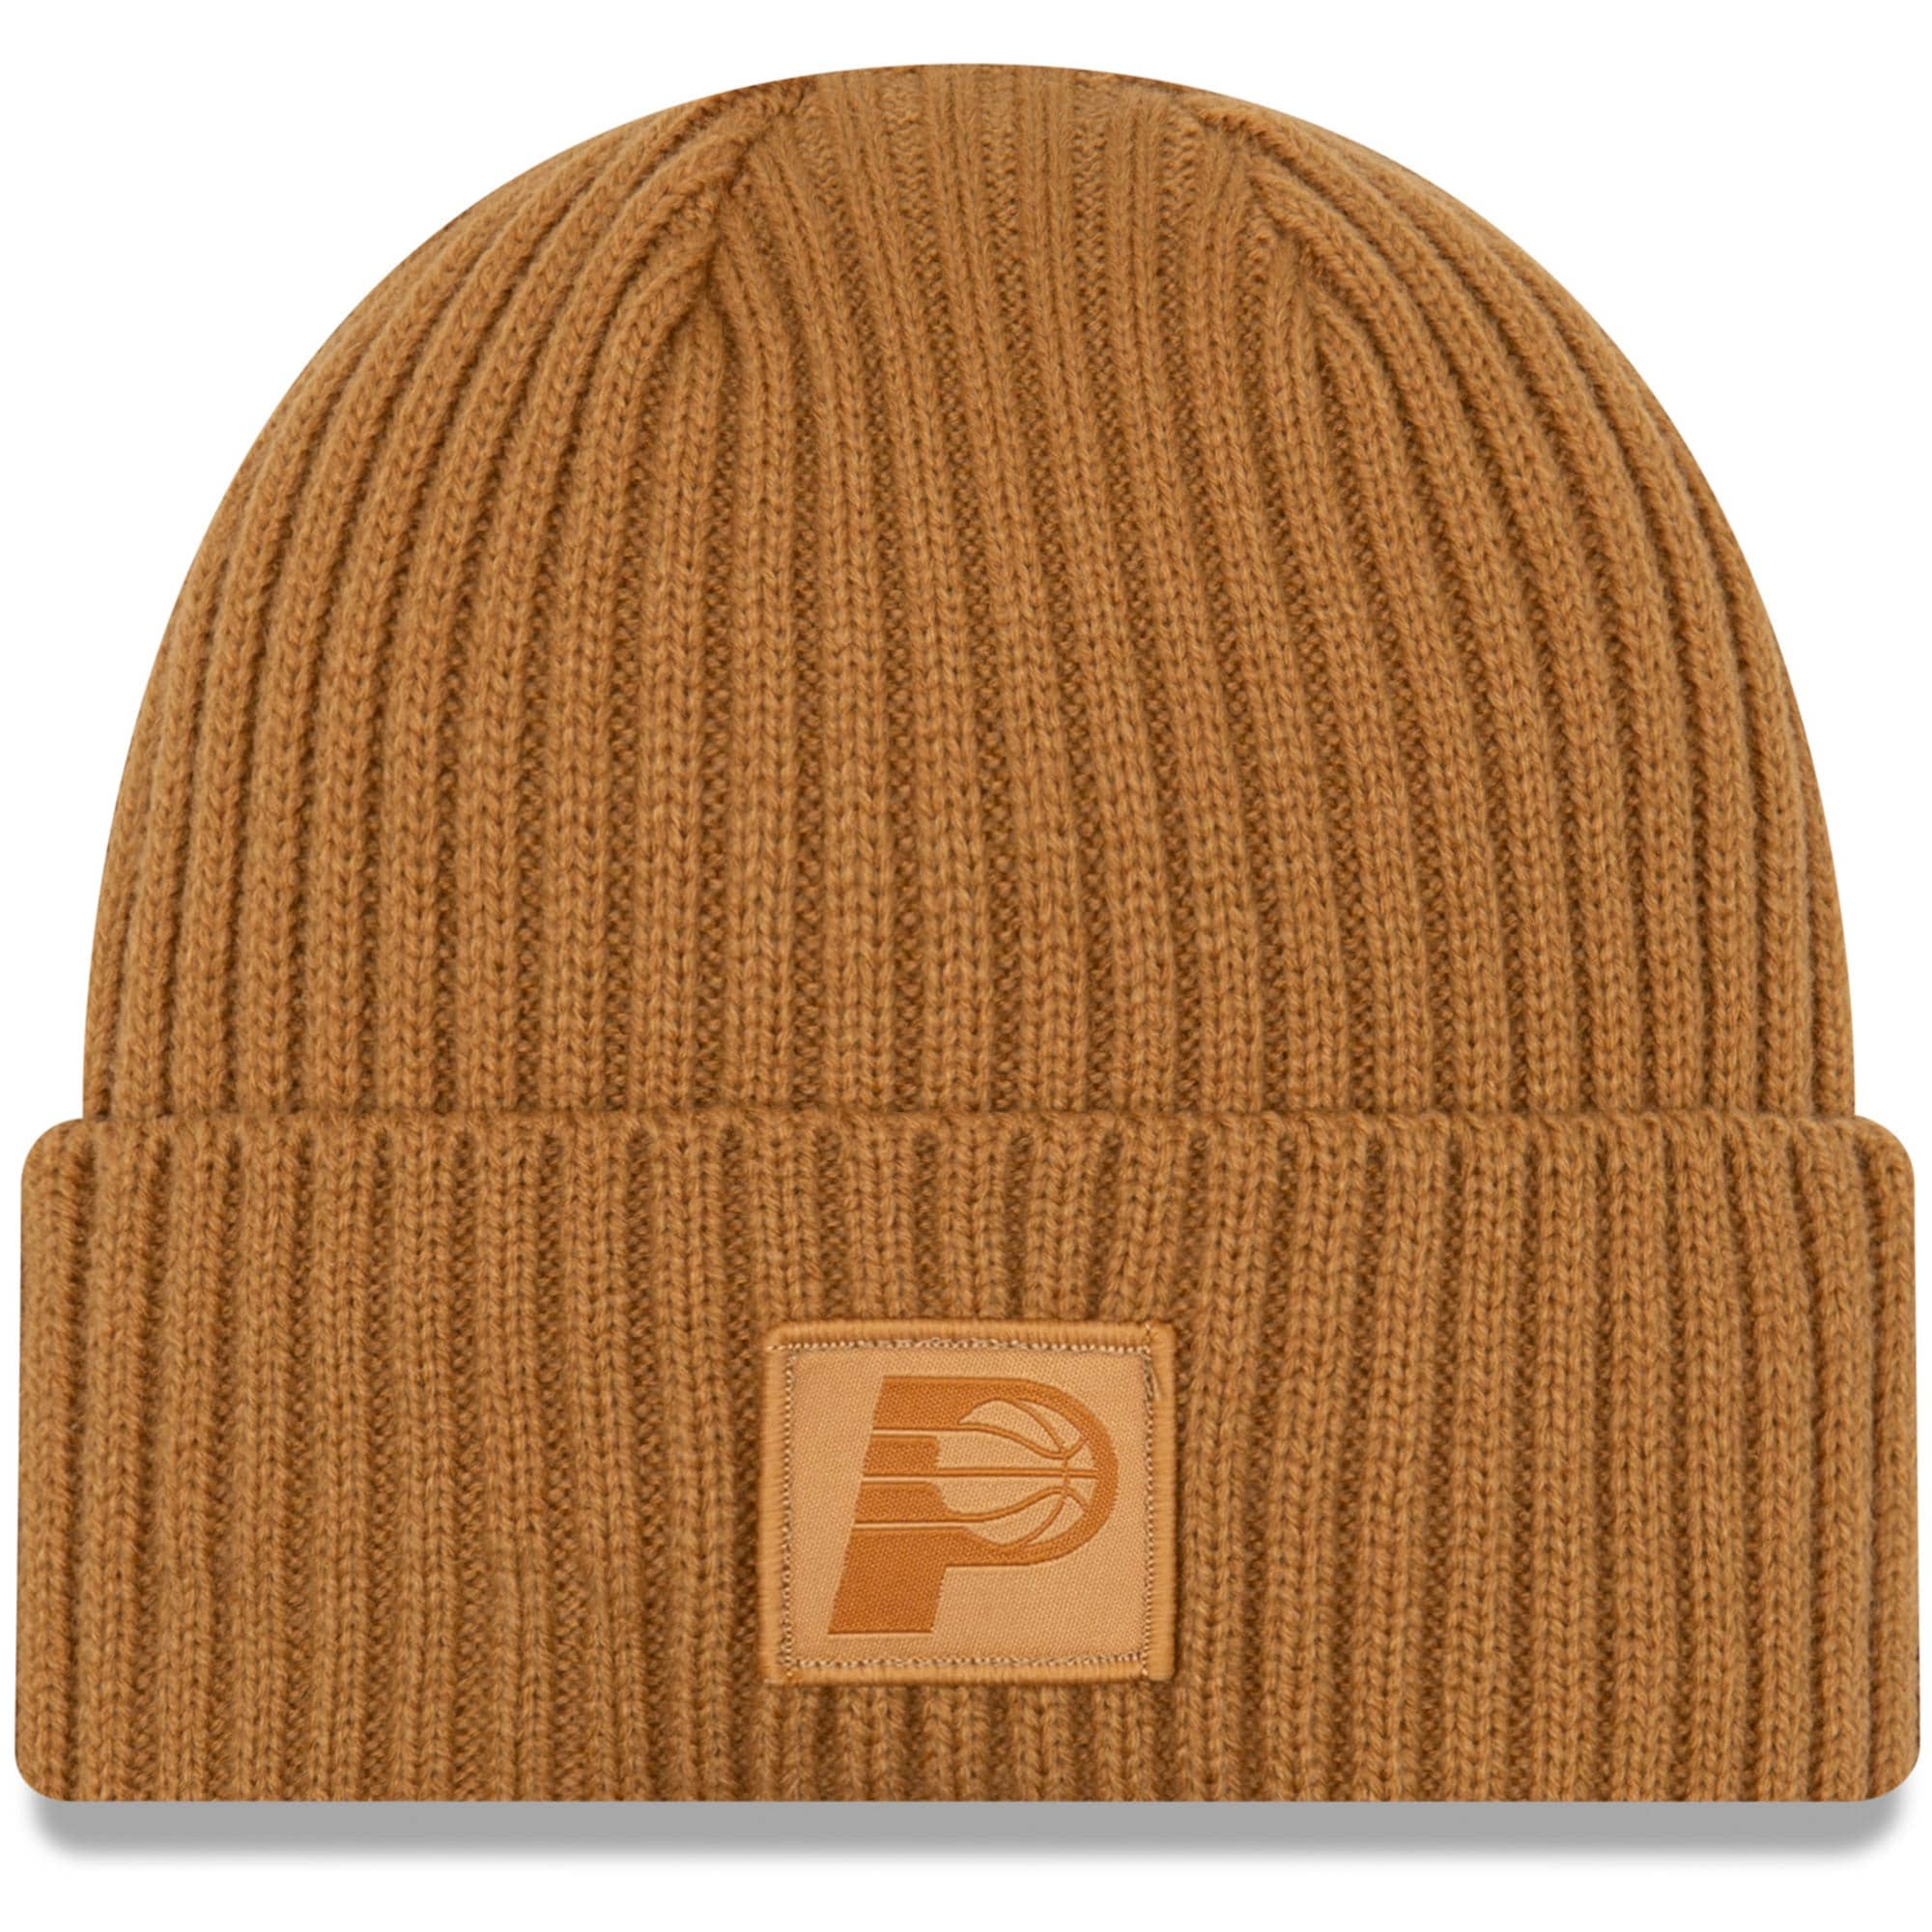 Indiana Pacers New Era Label Cuffed Knit Hat - Tan